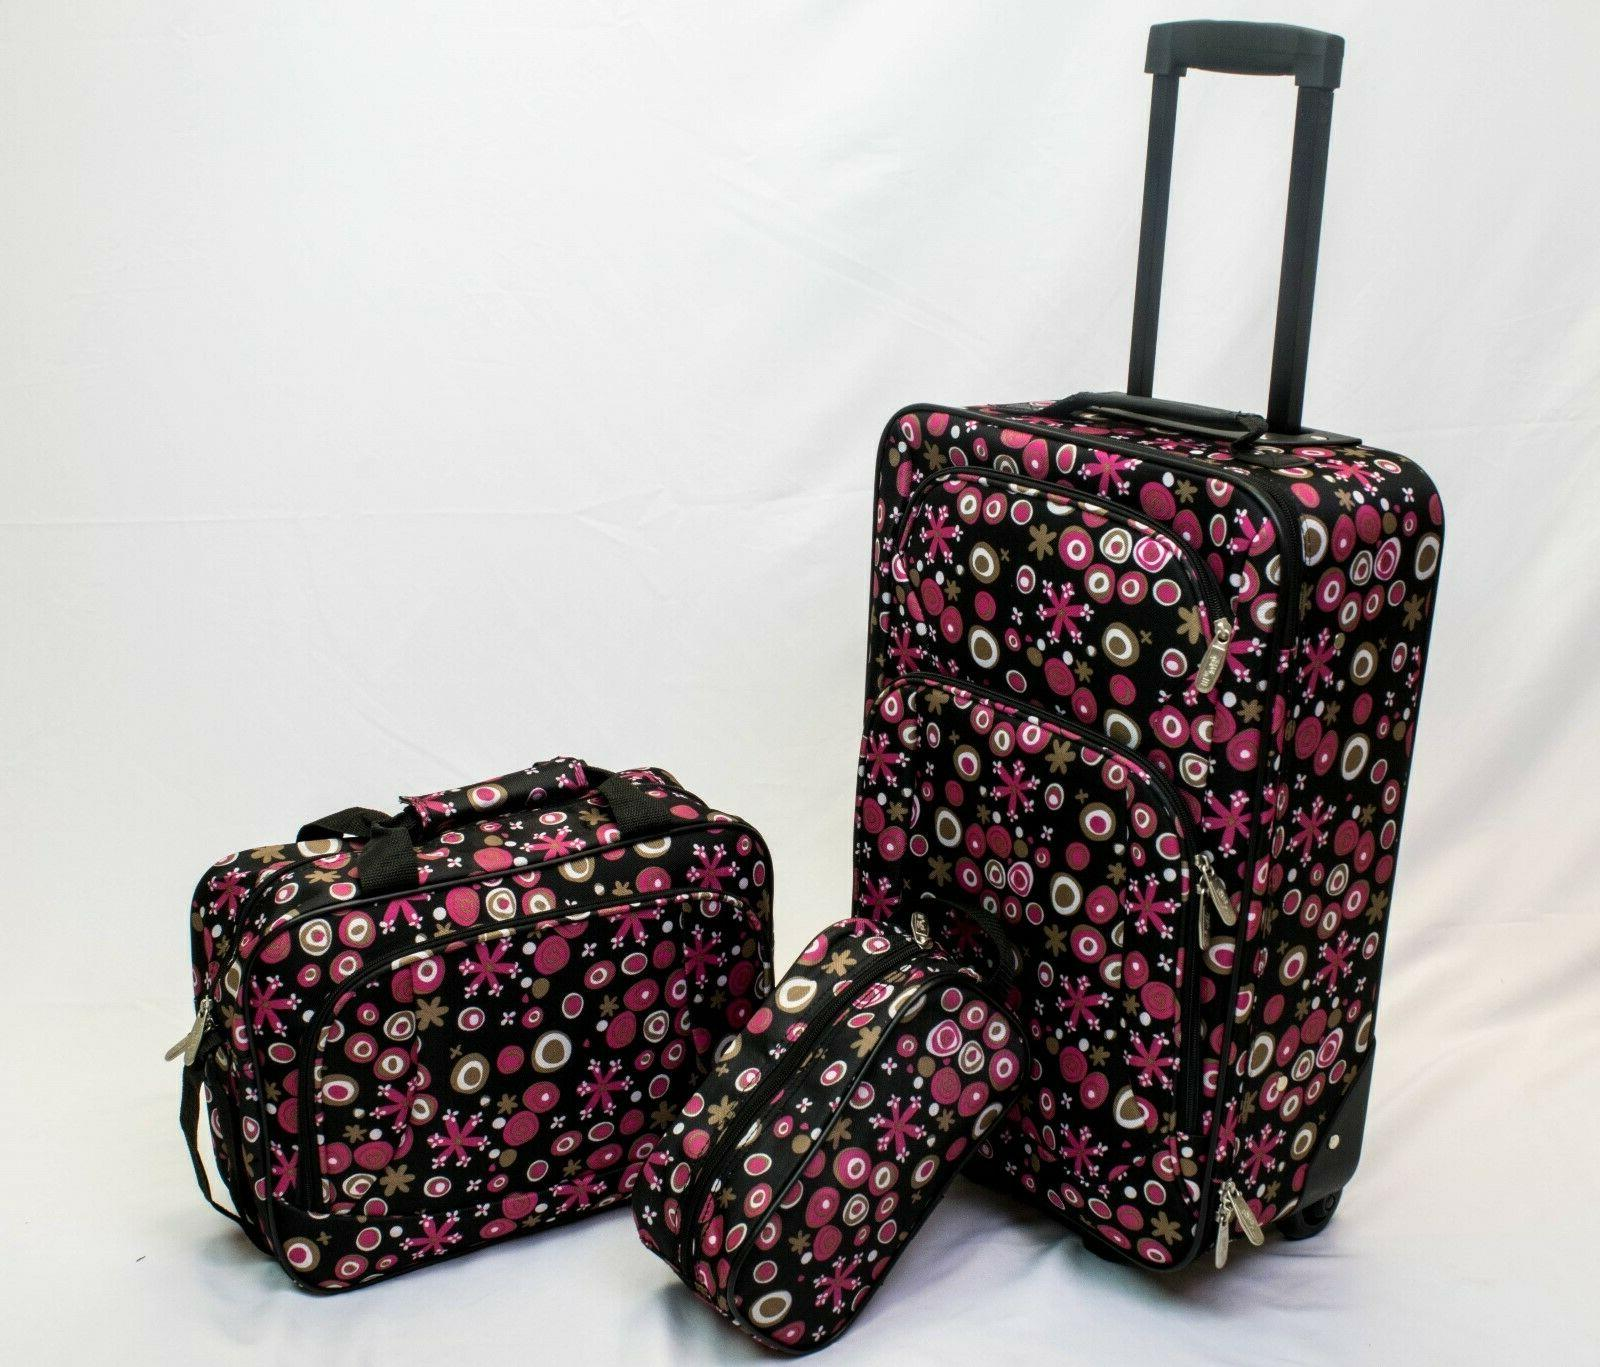 3pc travel luggage set 20in carry on